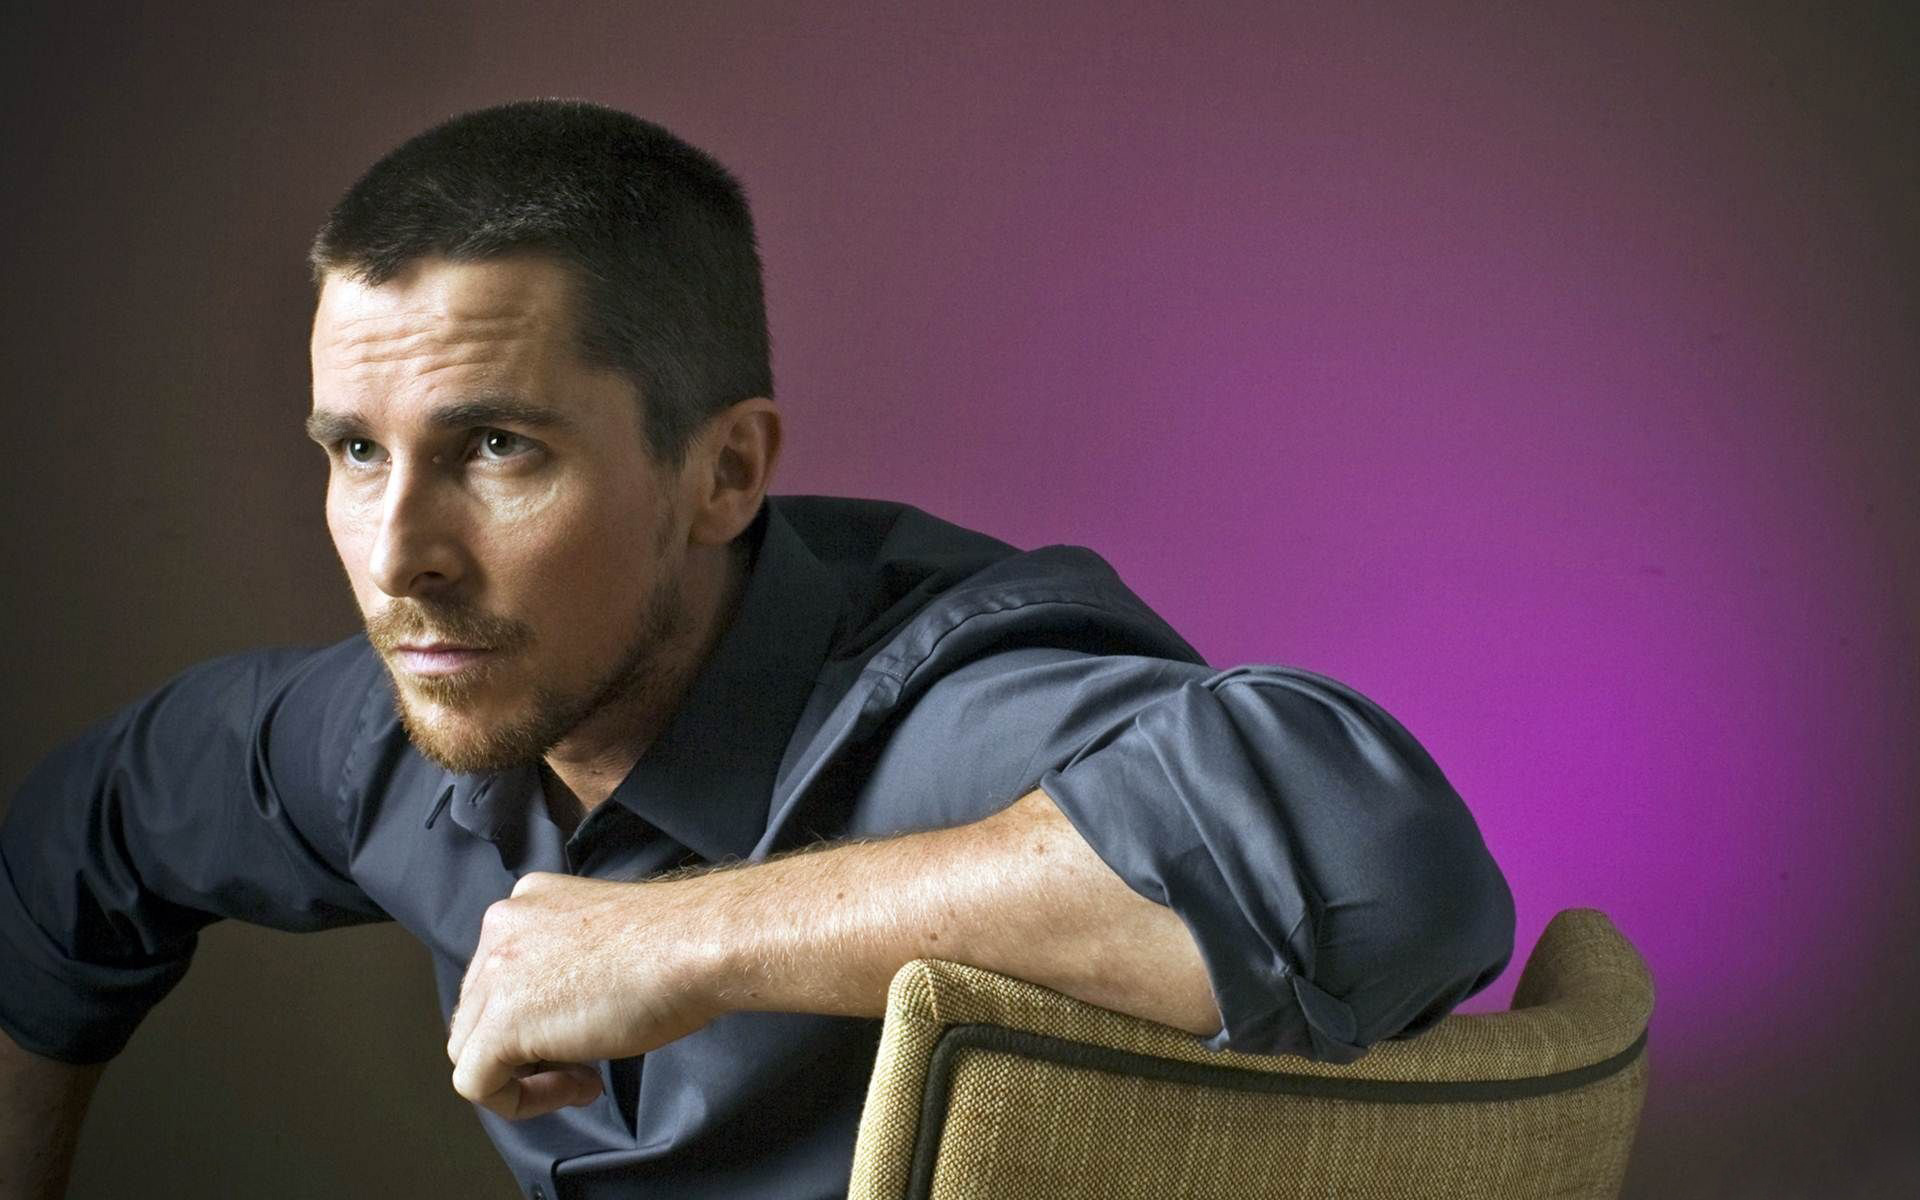 1920x1200 - Christian Bale Wallpapers 27